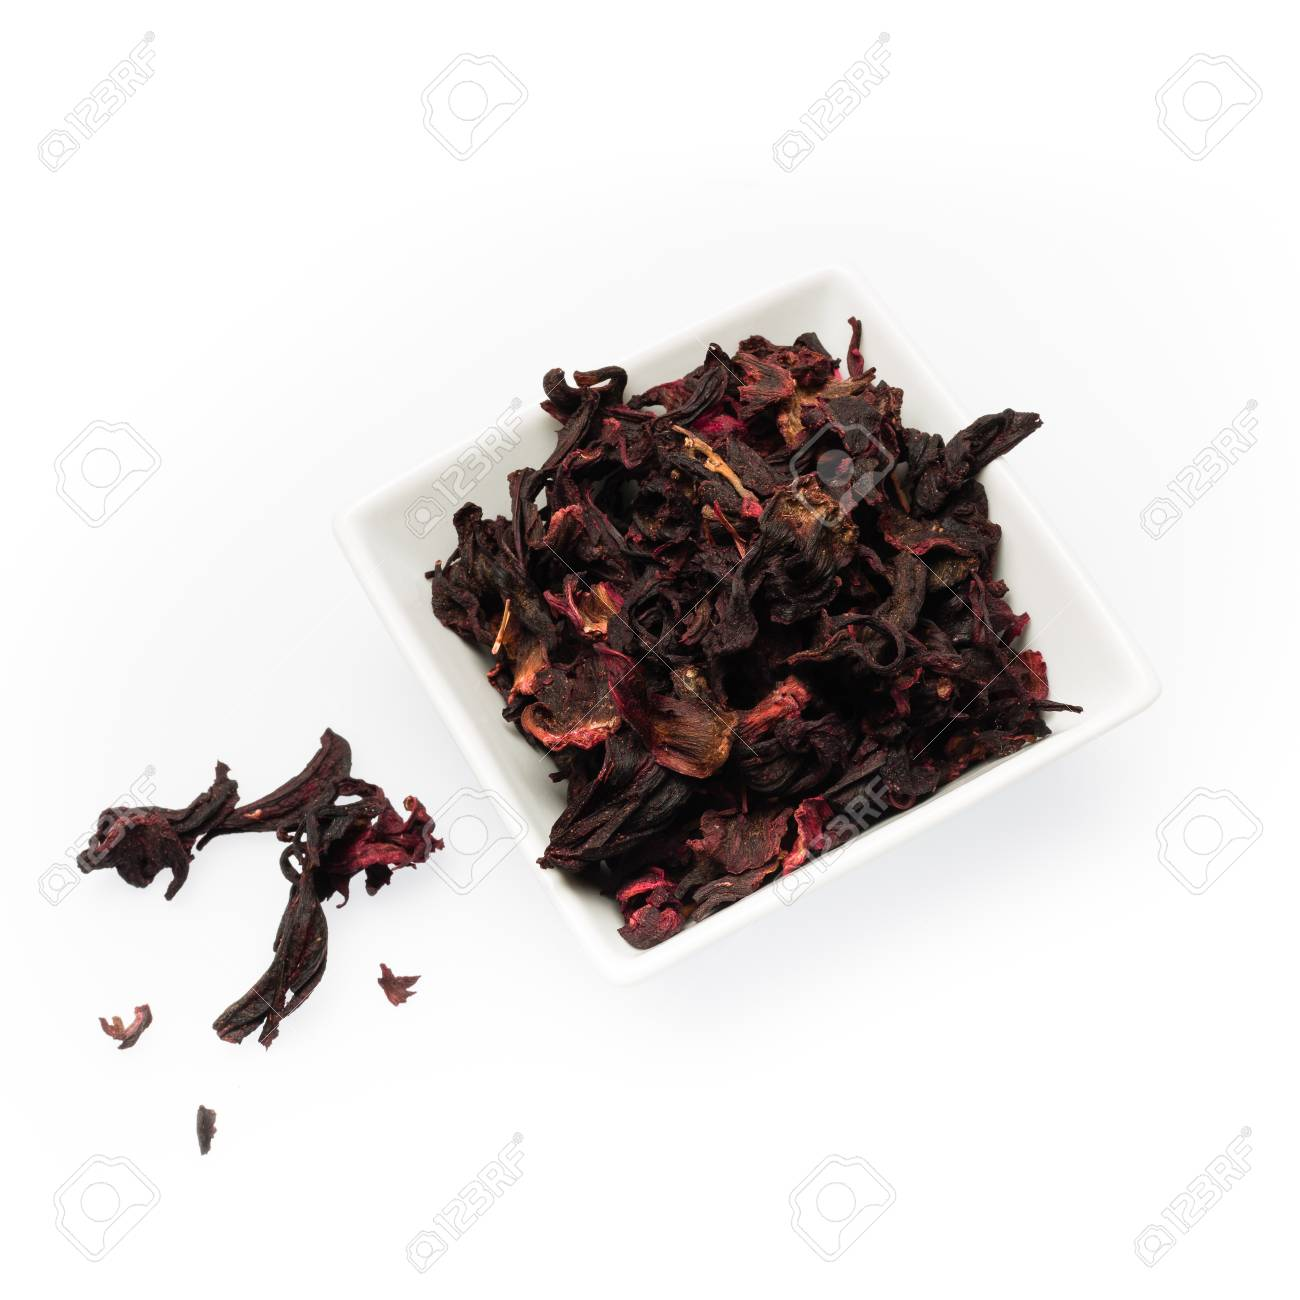 Fragrant and tasty tea from dried hibiscus flowers stock photo fragrant and tasty tea from dried hibiscus flowers stock photo 22889381 izmirmasajfo